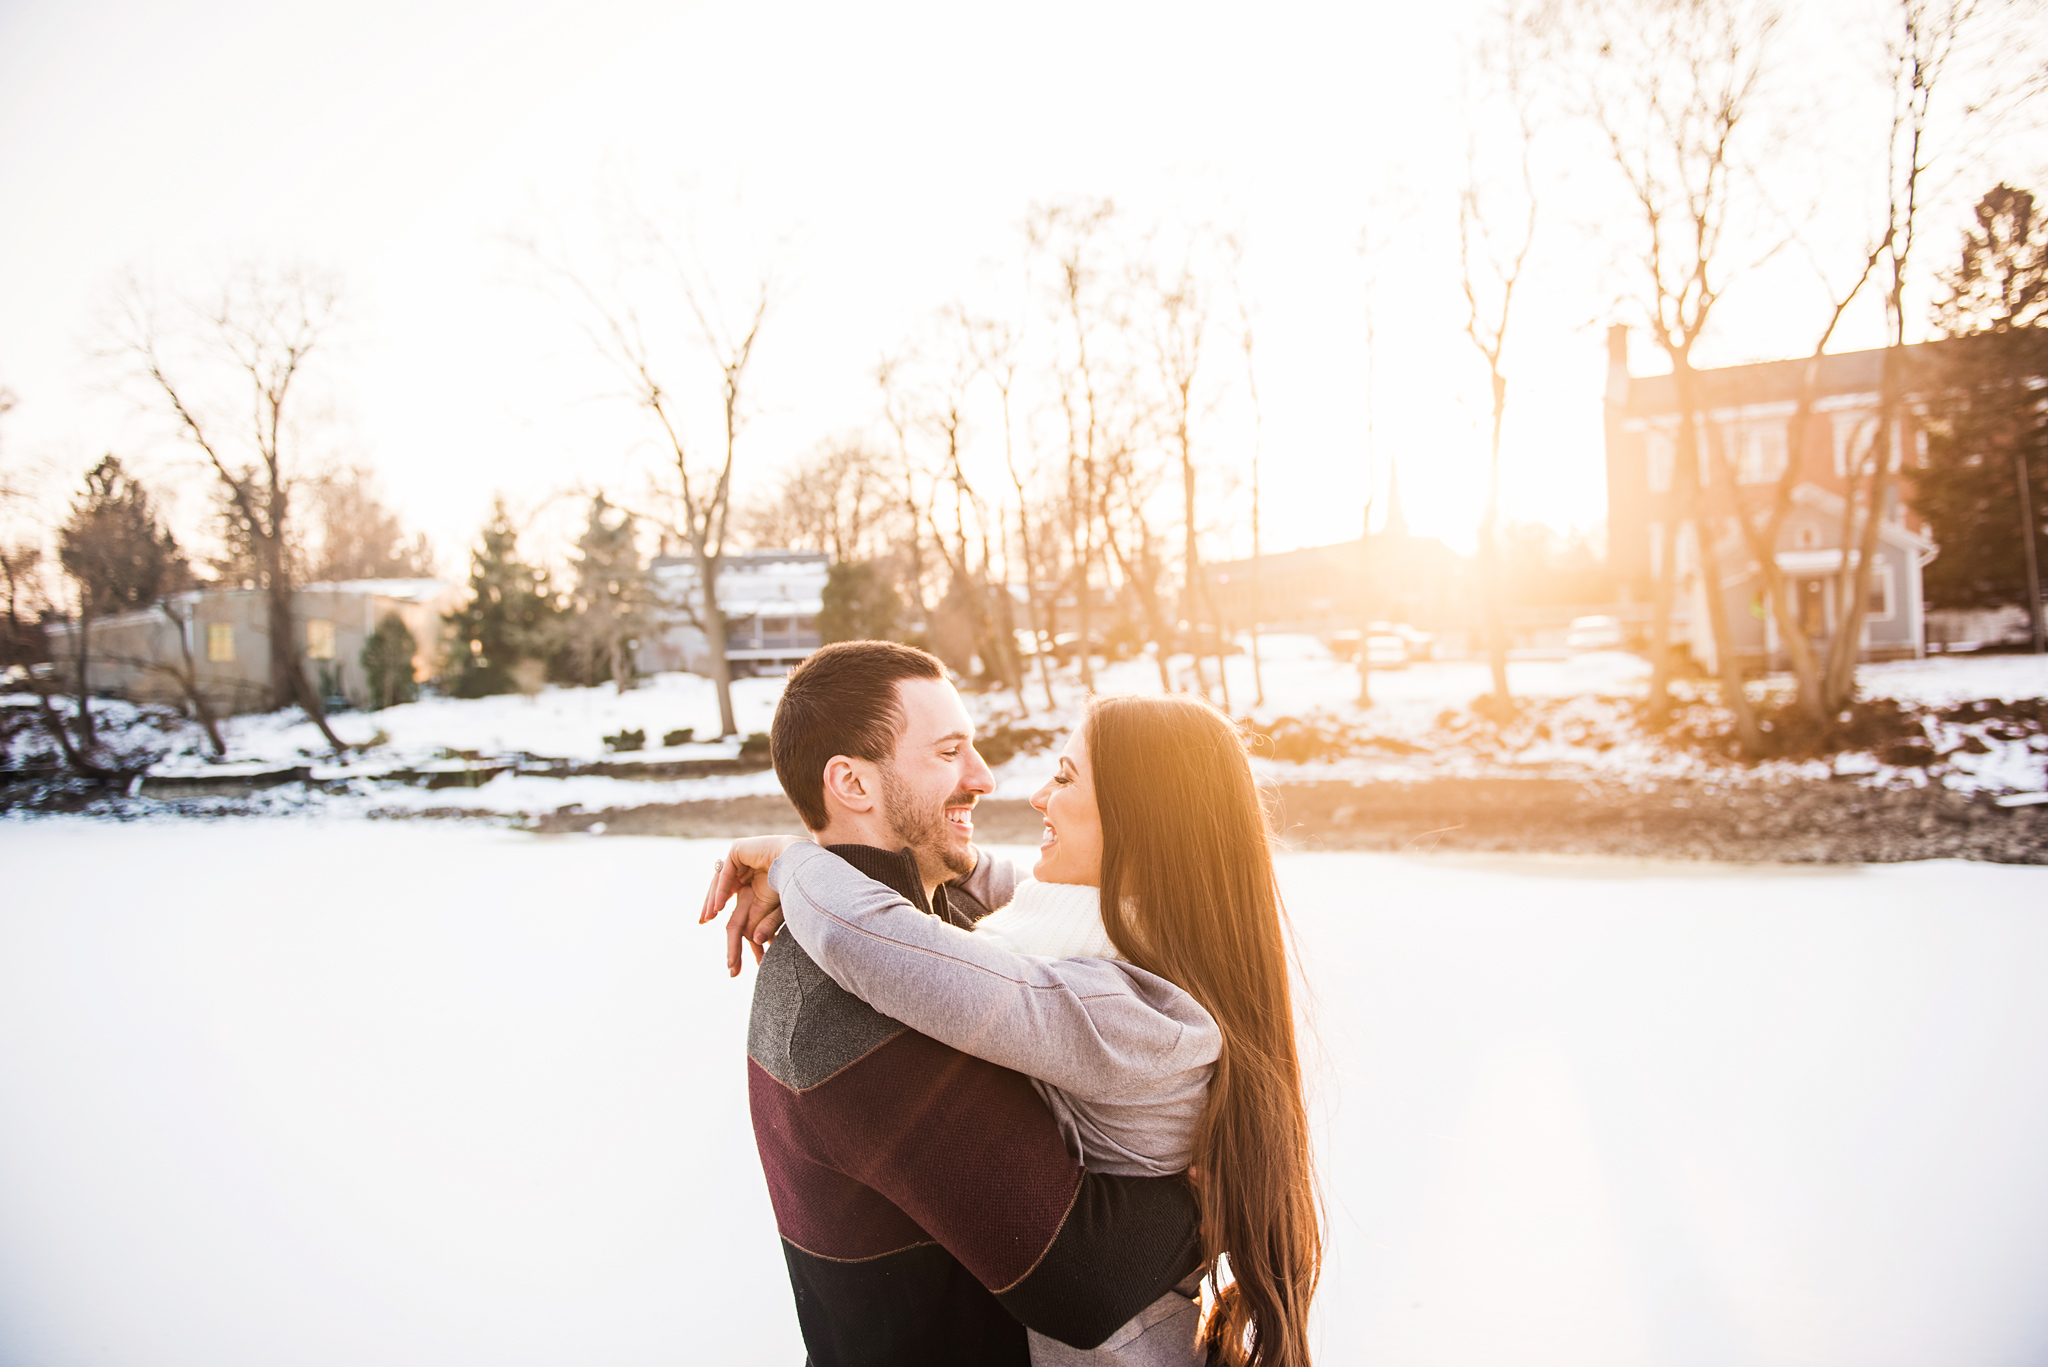 Schoen_Place_Rochester_Engagement_Session_JILL_STUDIO_Rochester_NY_Photographer_DSC_1997.jpg